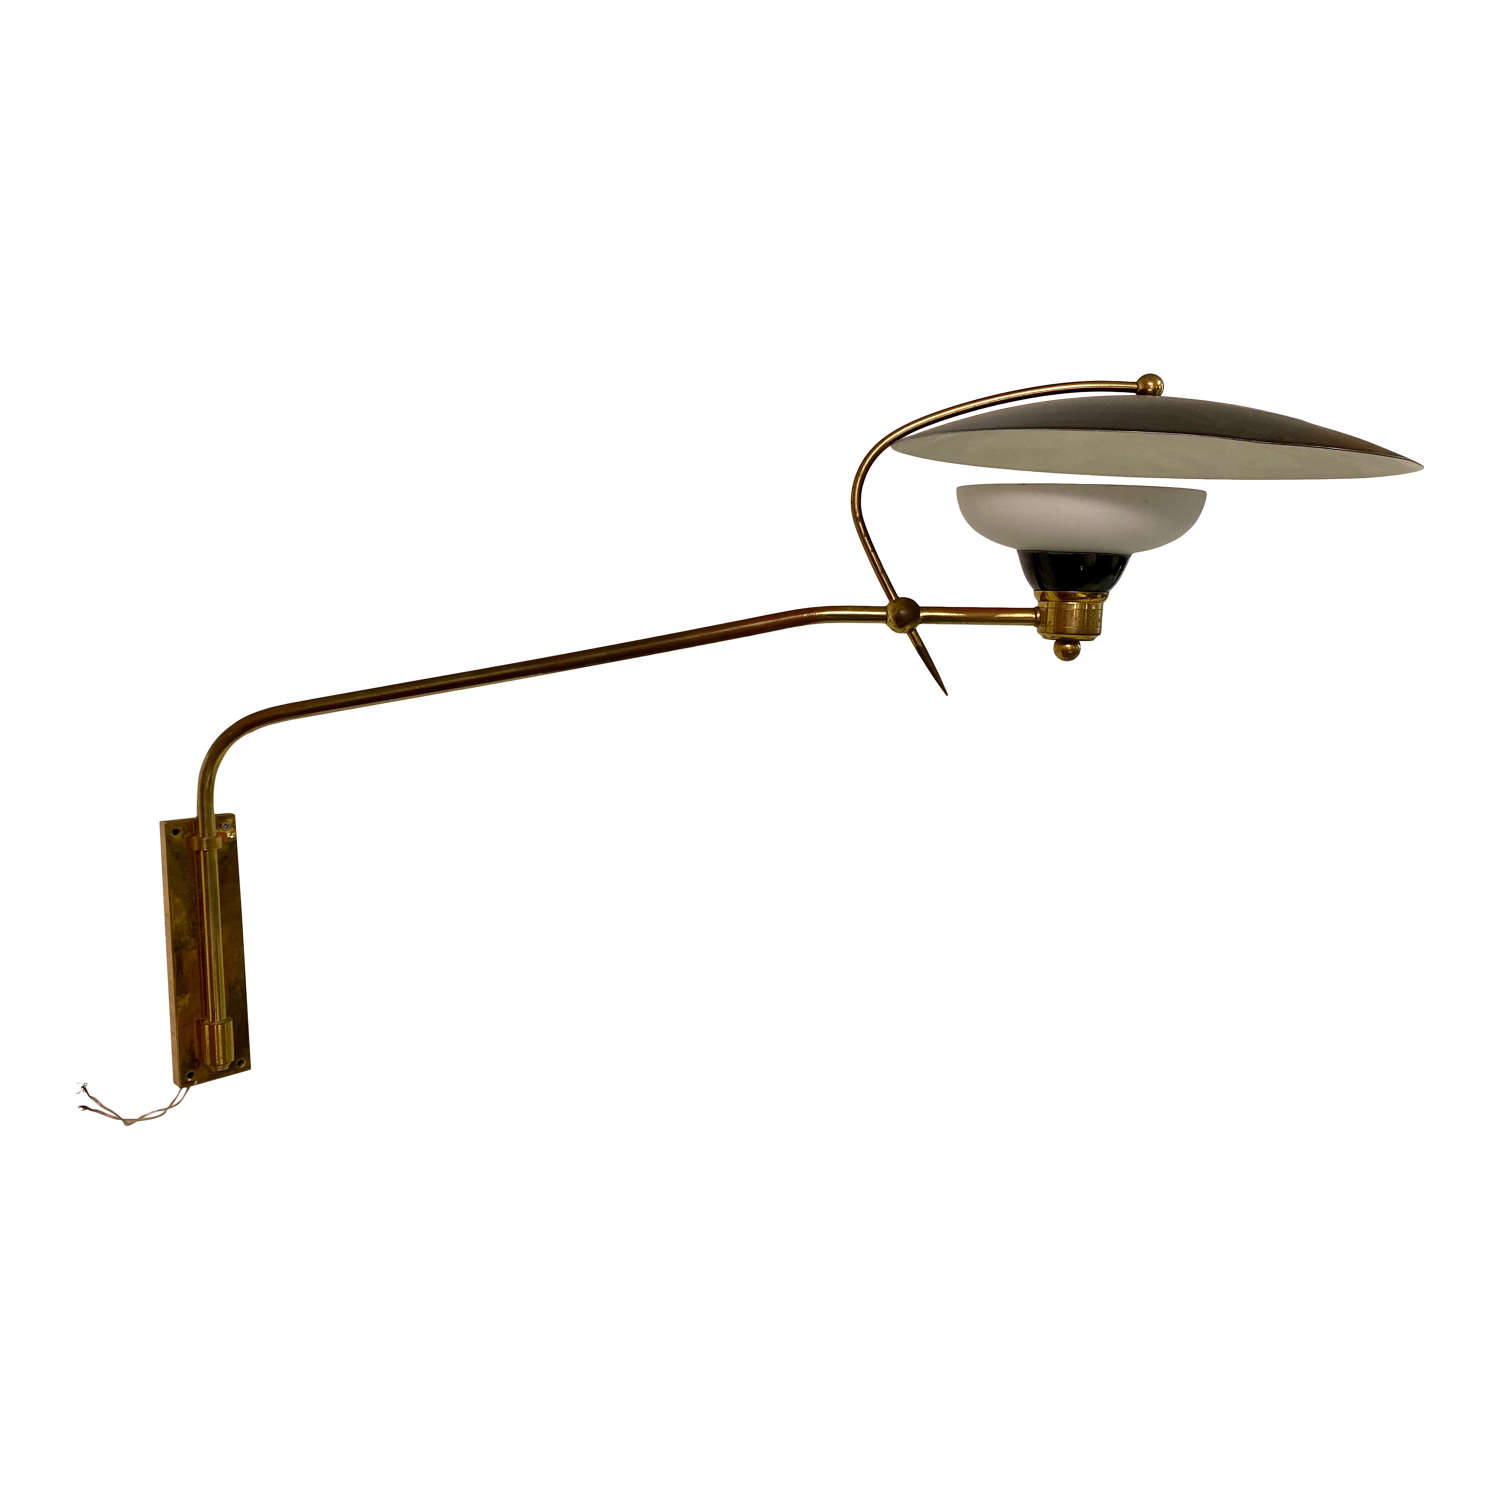 1950s Italian Brass, Enamel and Glass Swing Wall Lamp